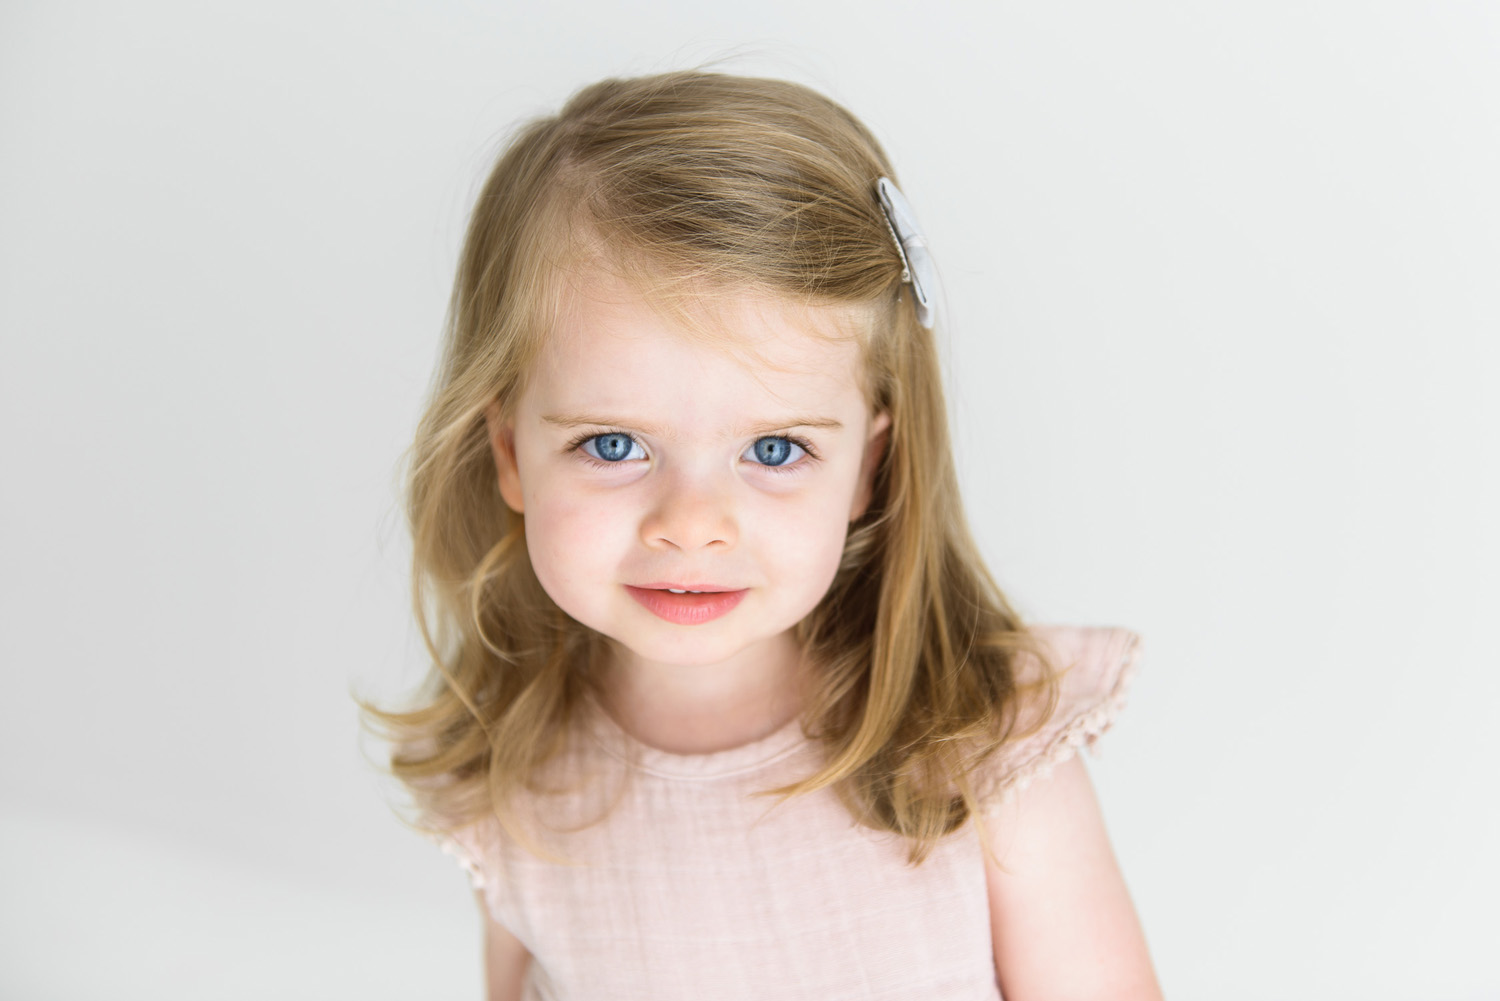 Young girl smiling coyly at camera during sutherland shire baby photography session in Sevenish Photography Studio